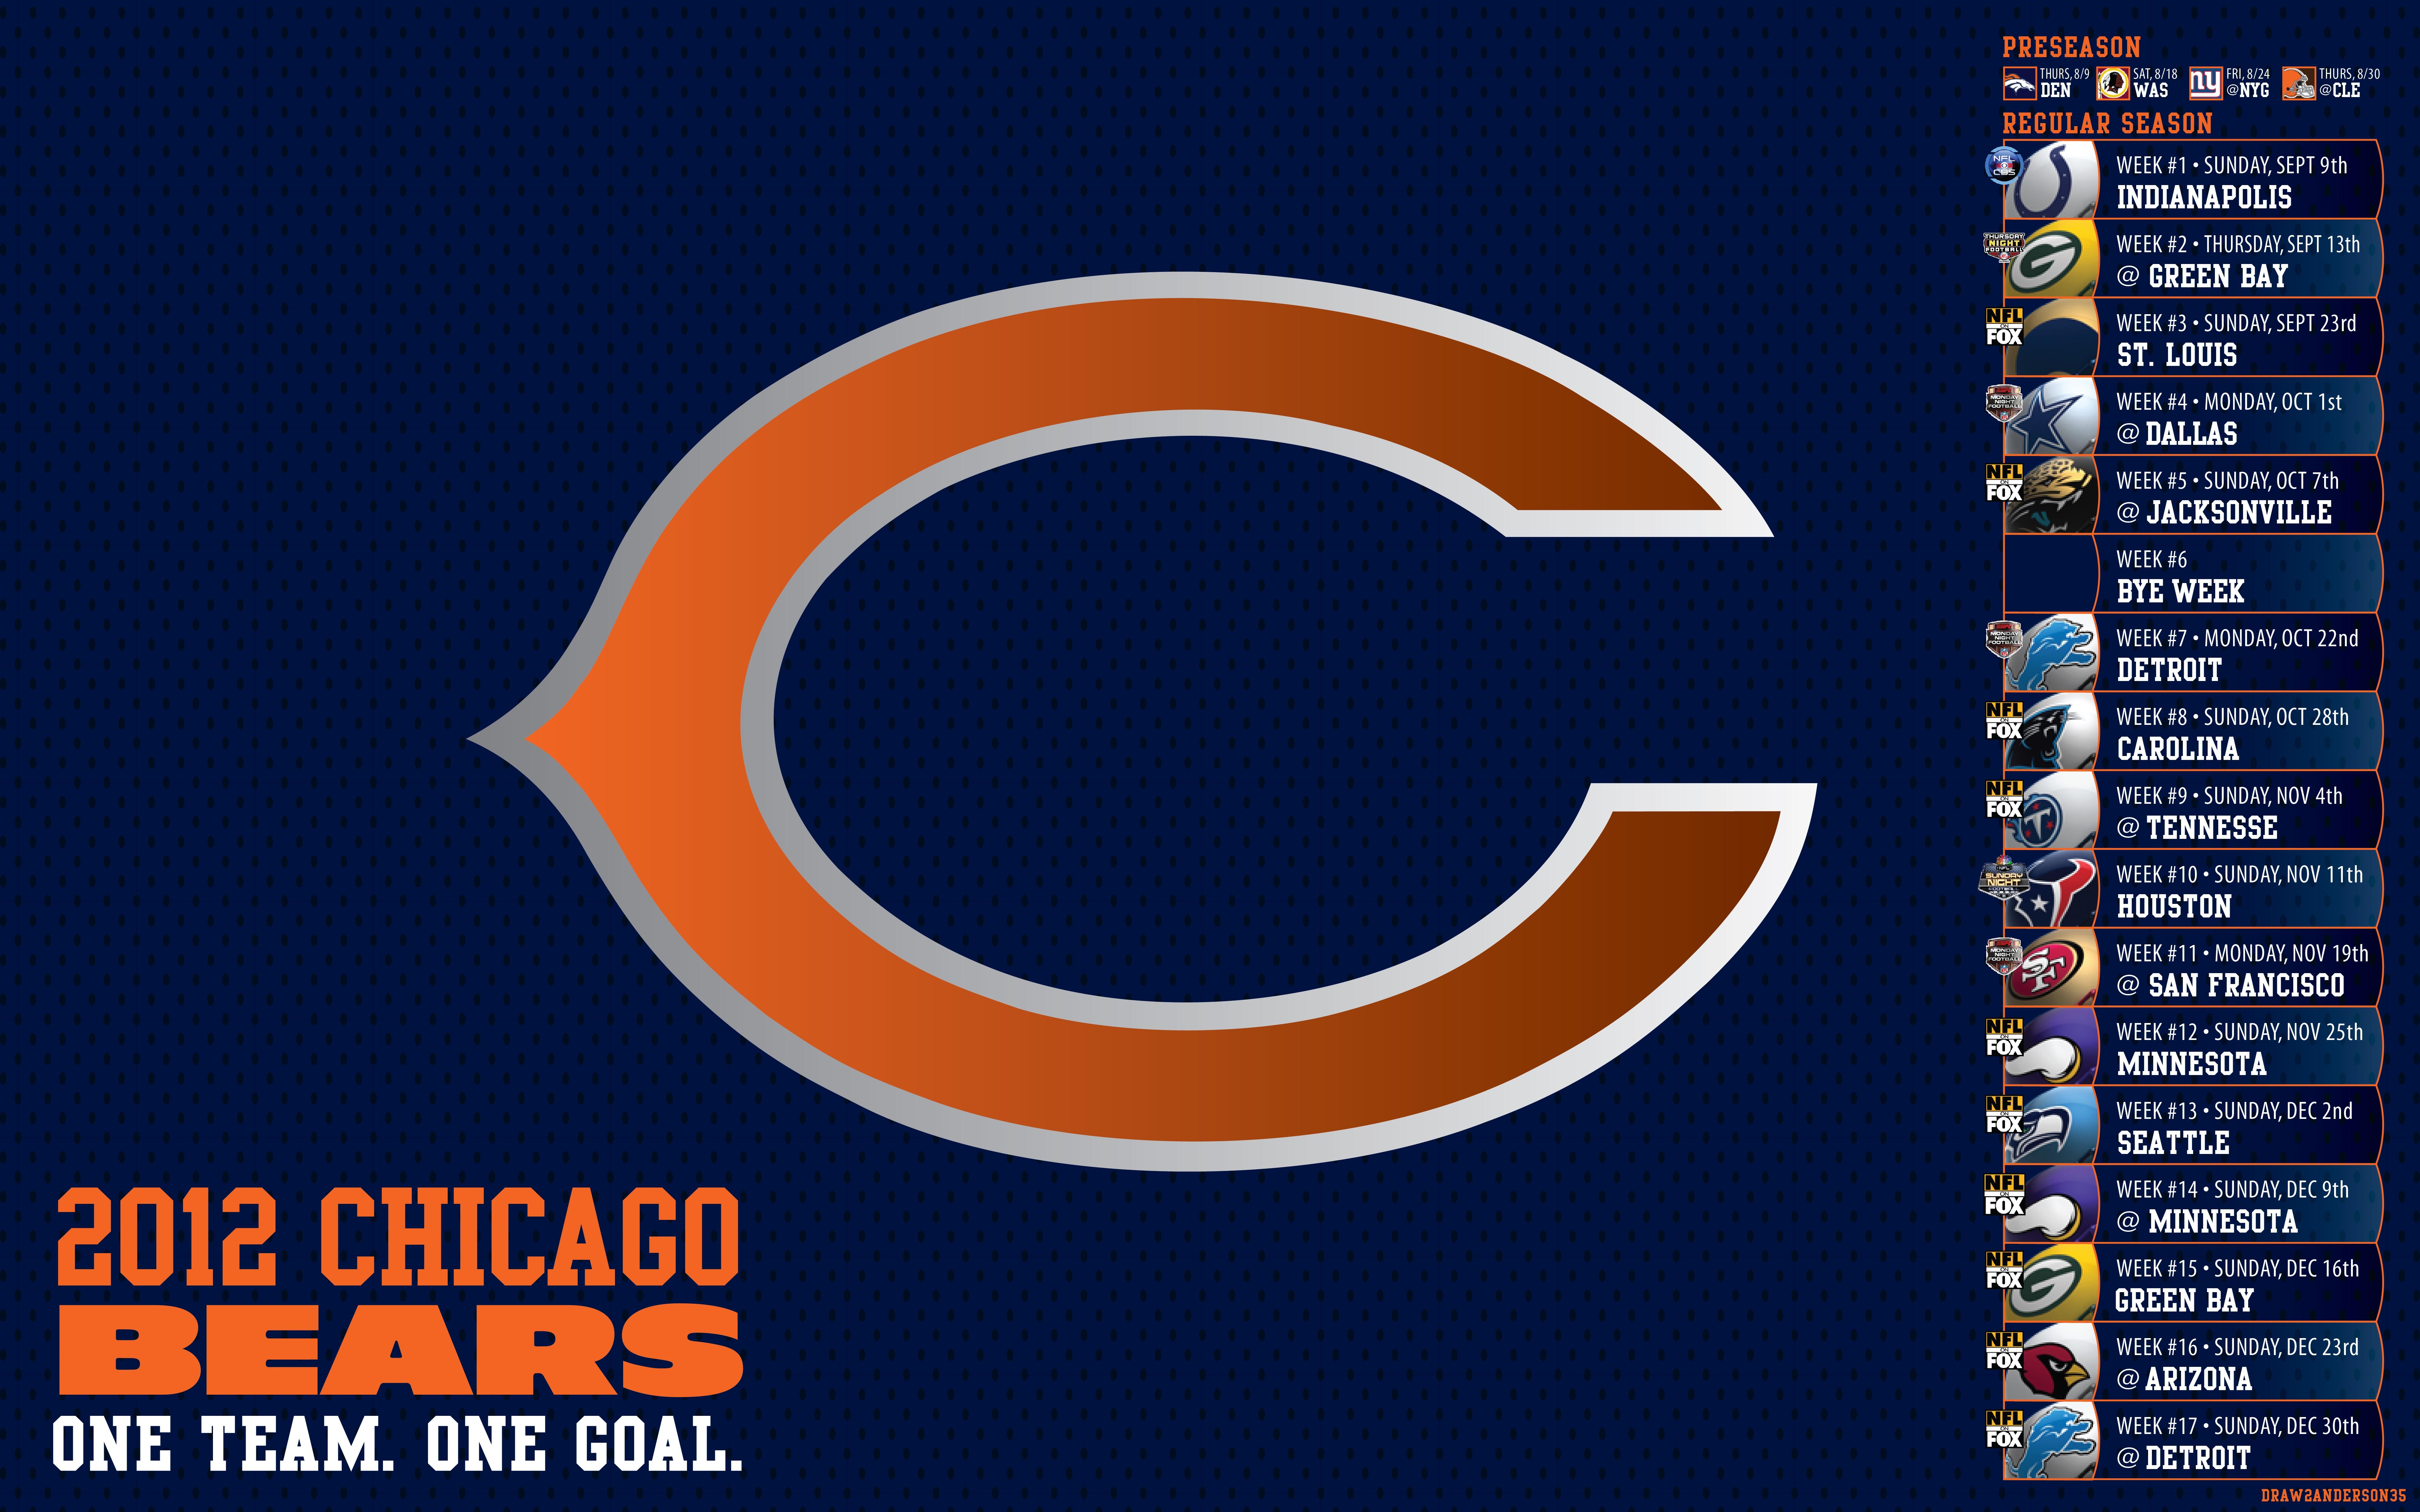 Outstanding Chicago Bears wallpaper Chicago Bears wallpapers 8000x5000